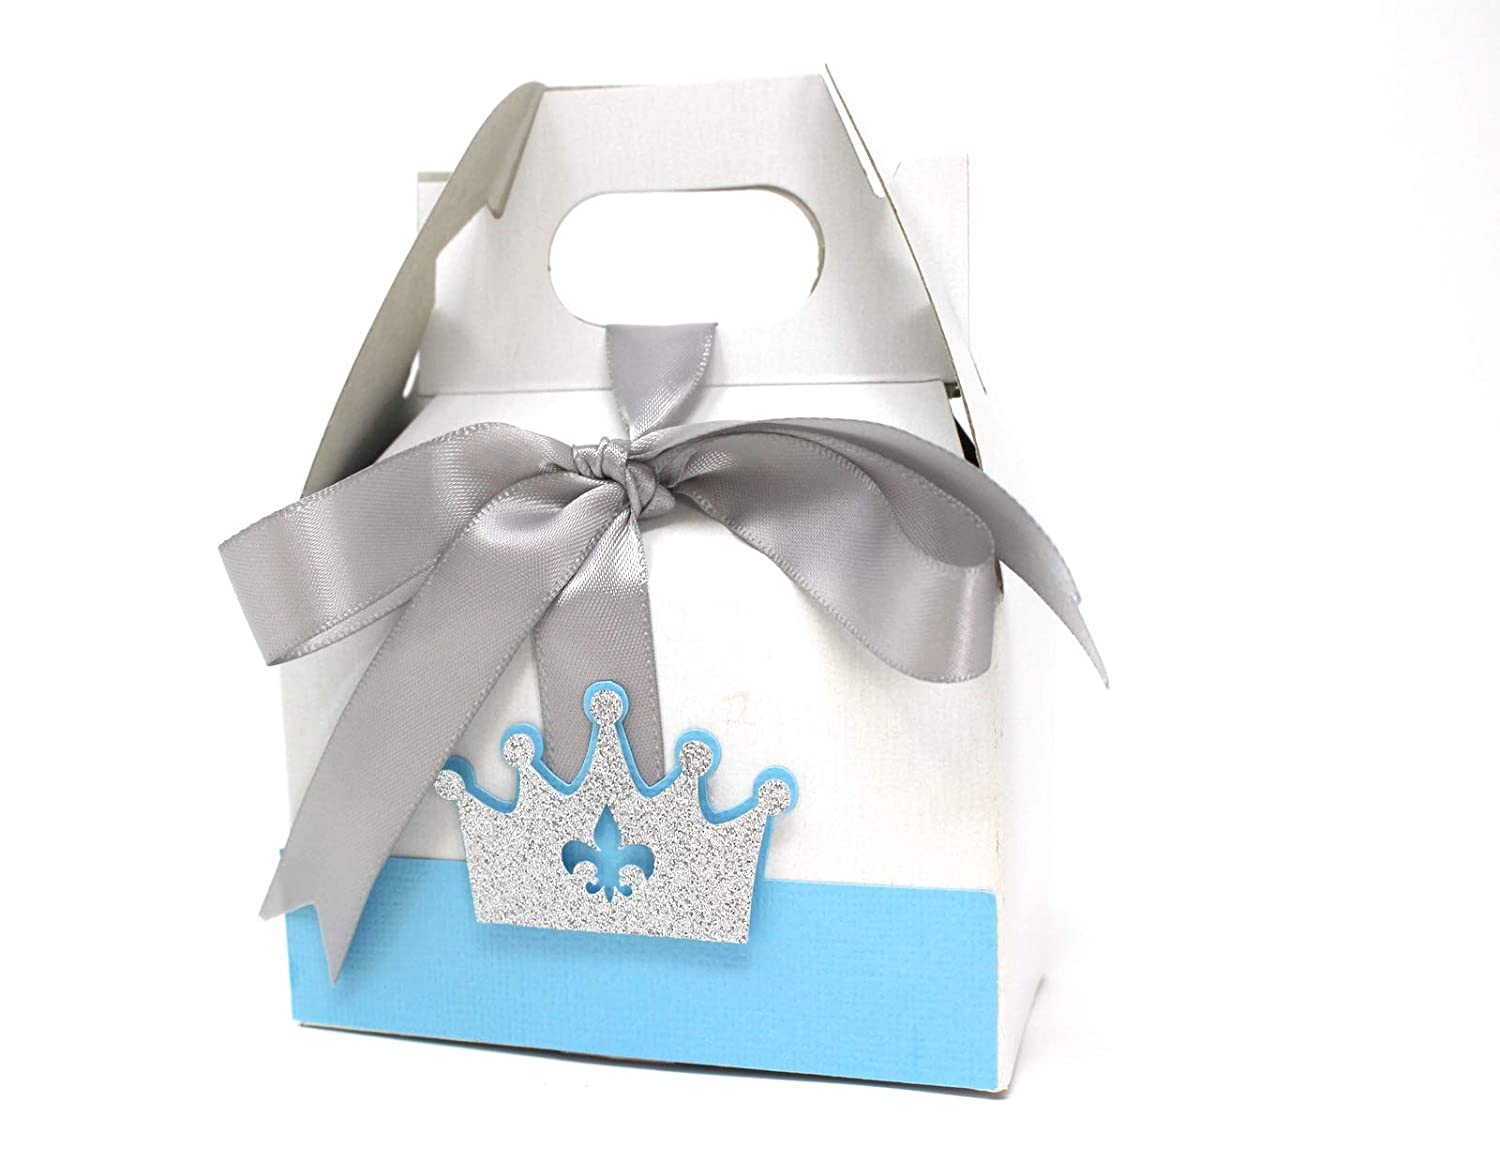 Gift Box Birthday Baby Shower Light Blue /& Silver 10sets Party Decoration Gable Box All About Details Prince Crown Theme Favor Box